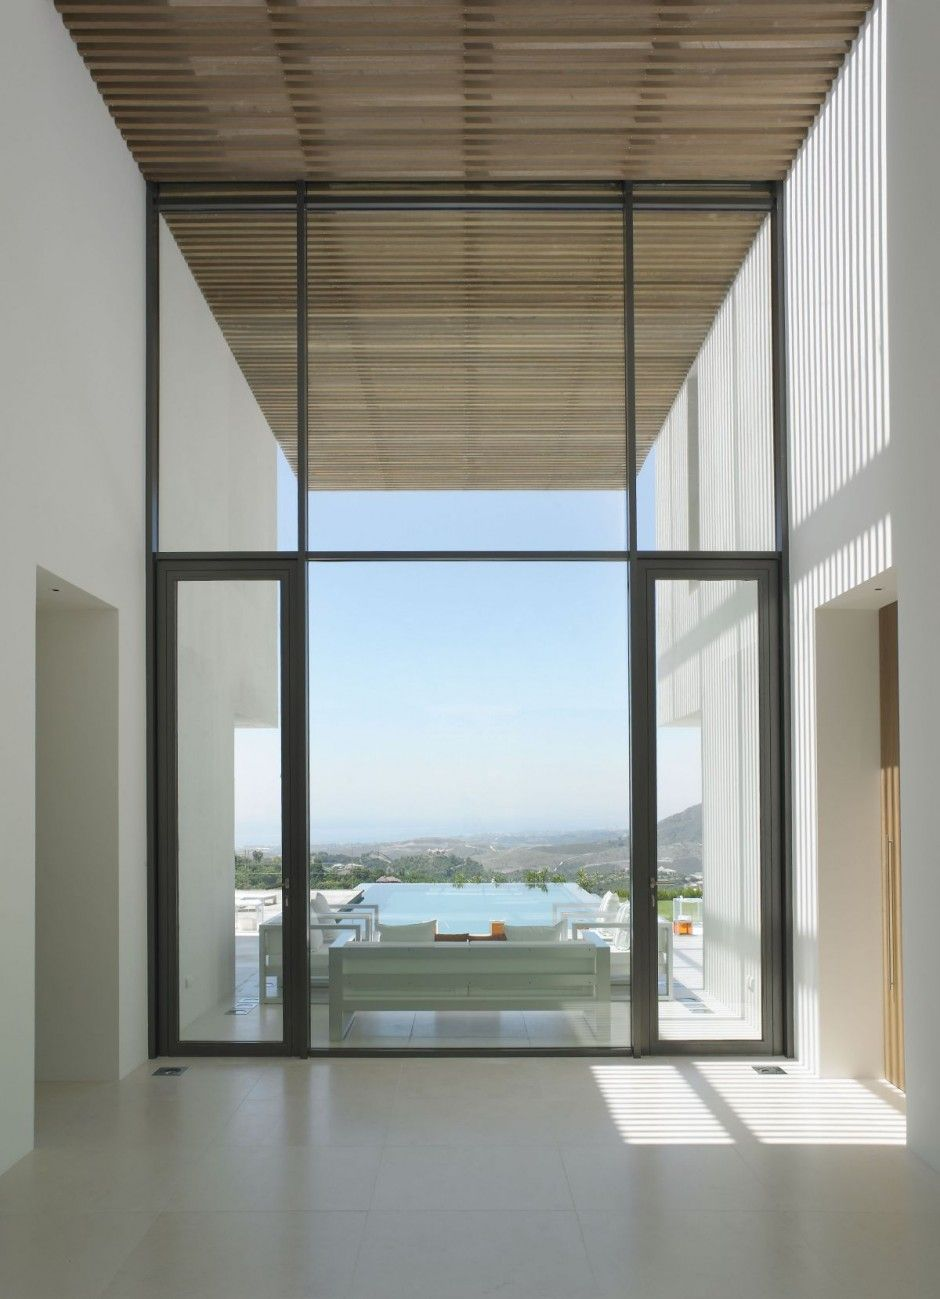 Villa in andalucia design by mclean quinlan architects architecture interior design ideas and online archives archiiiarchiii